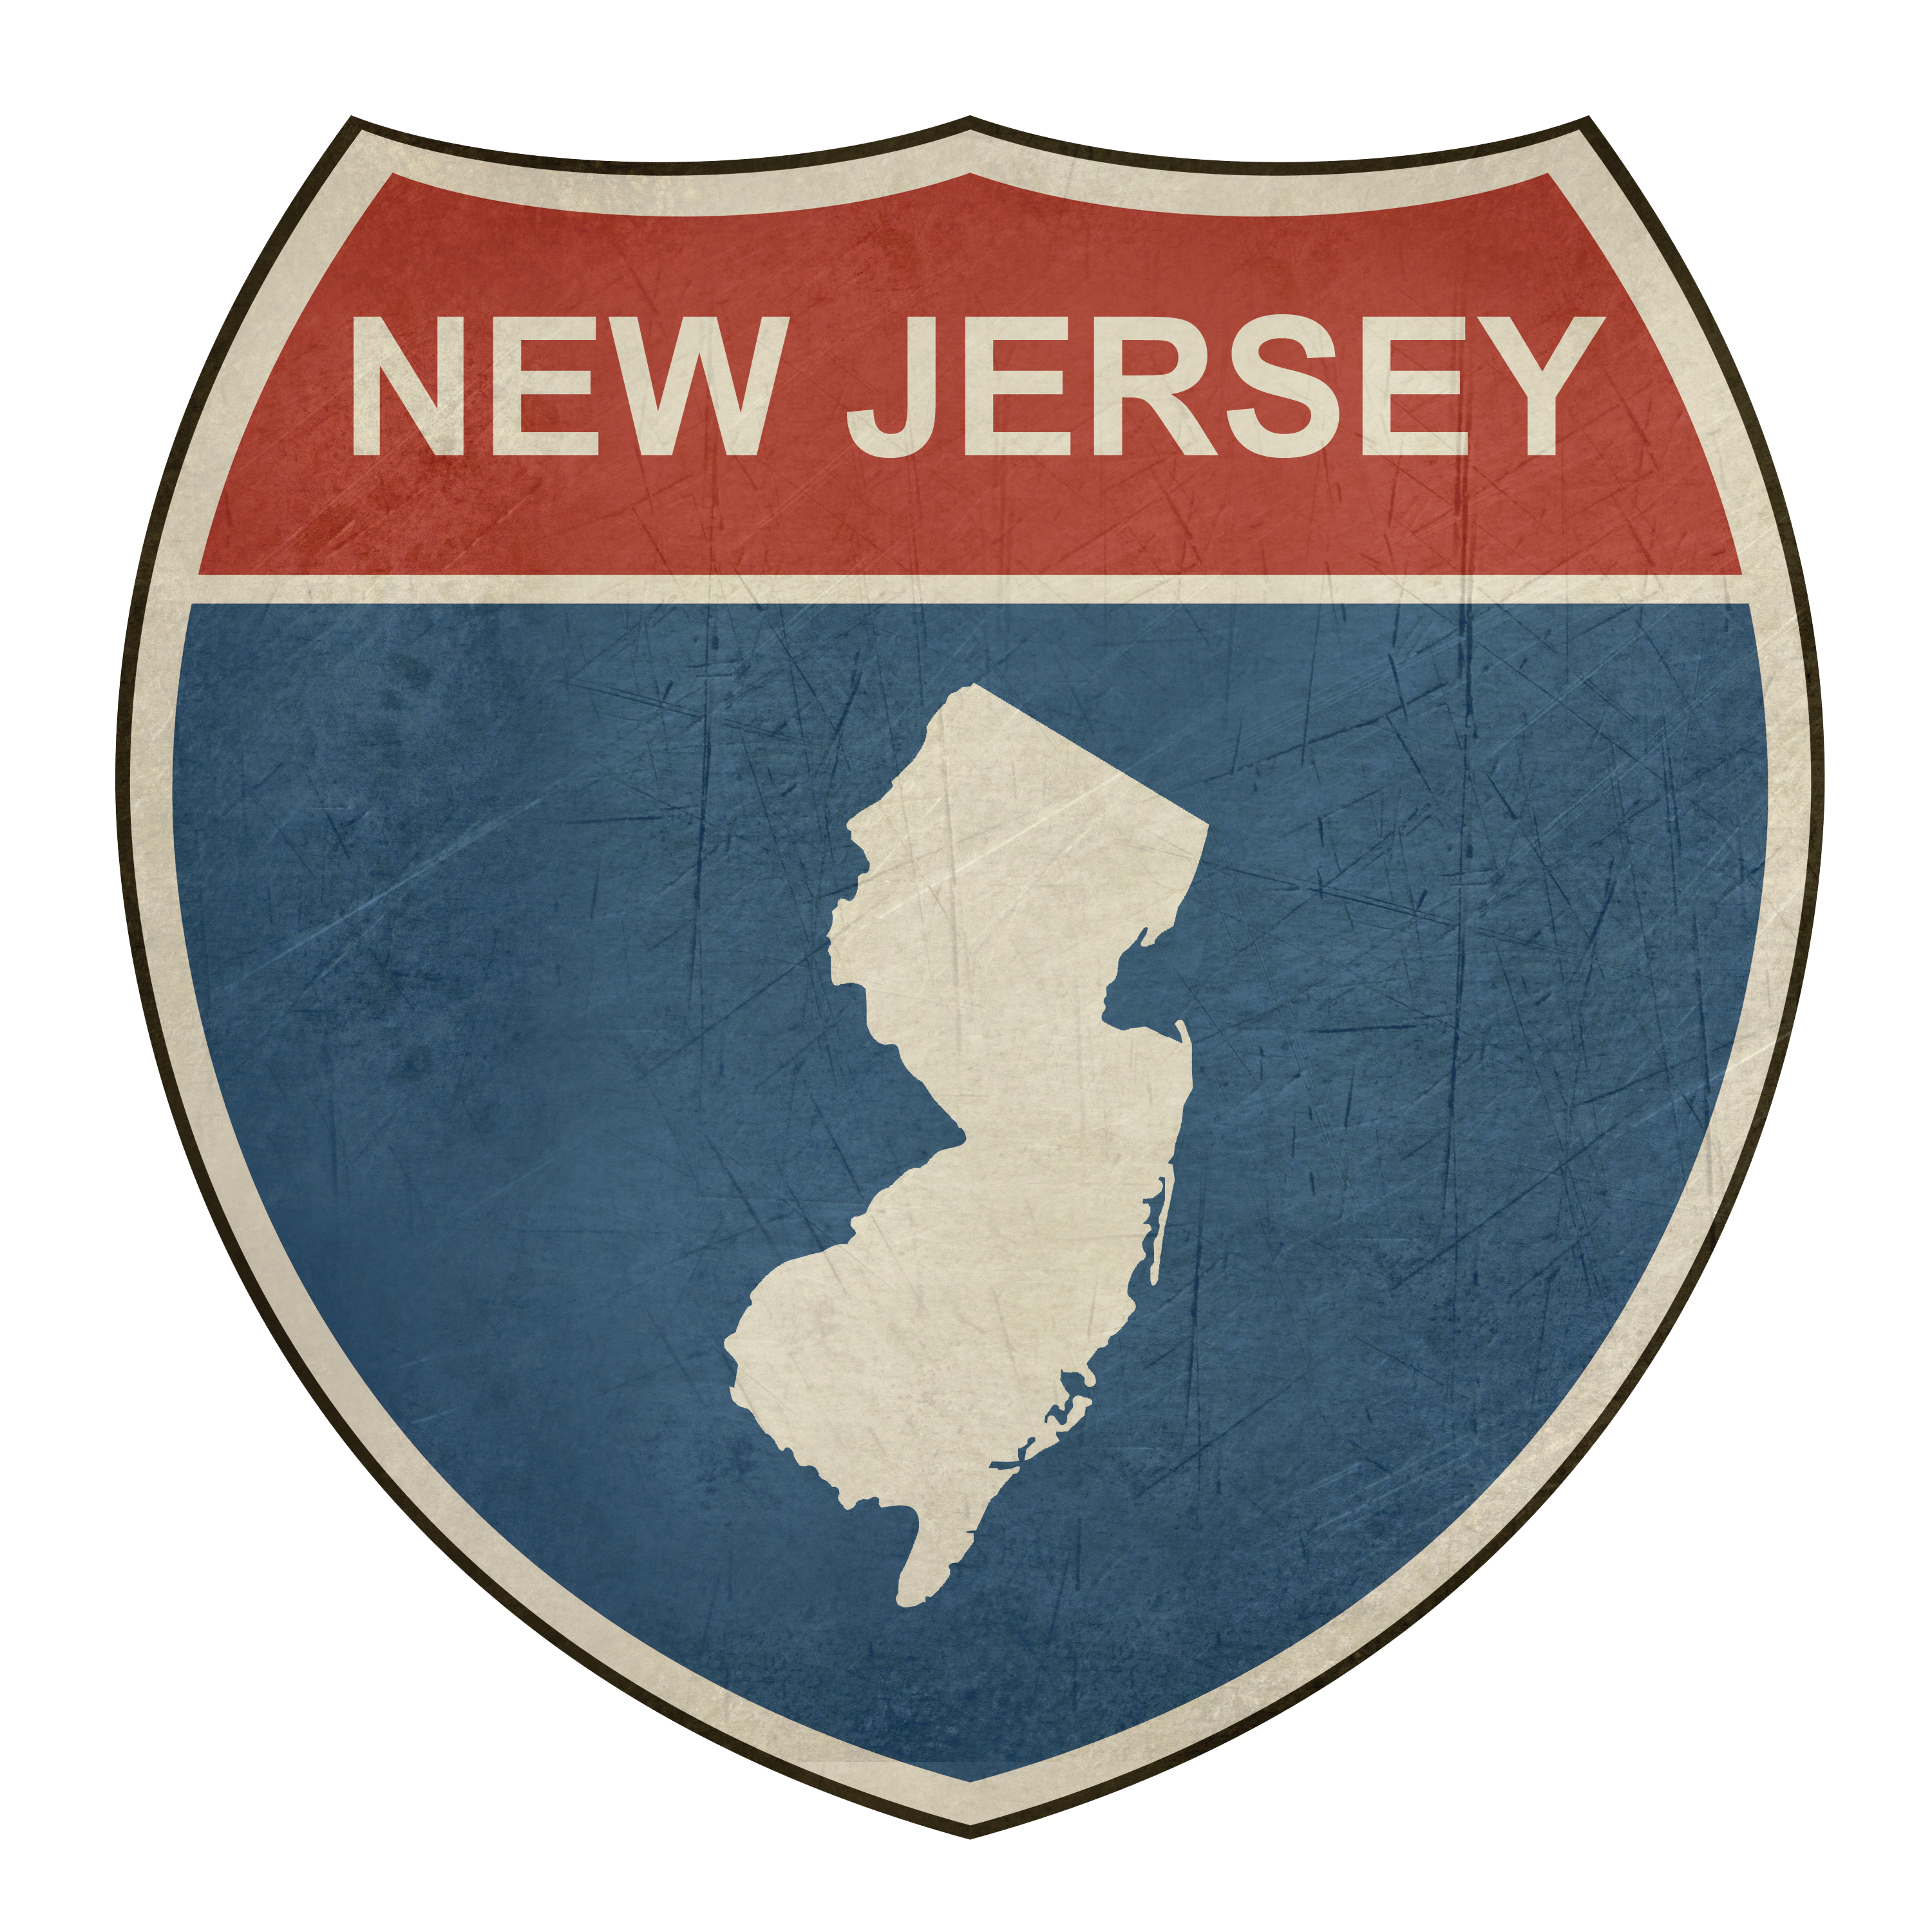 New Jersey Road sign with state outline